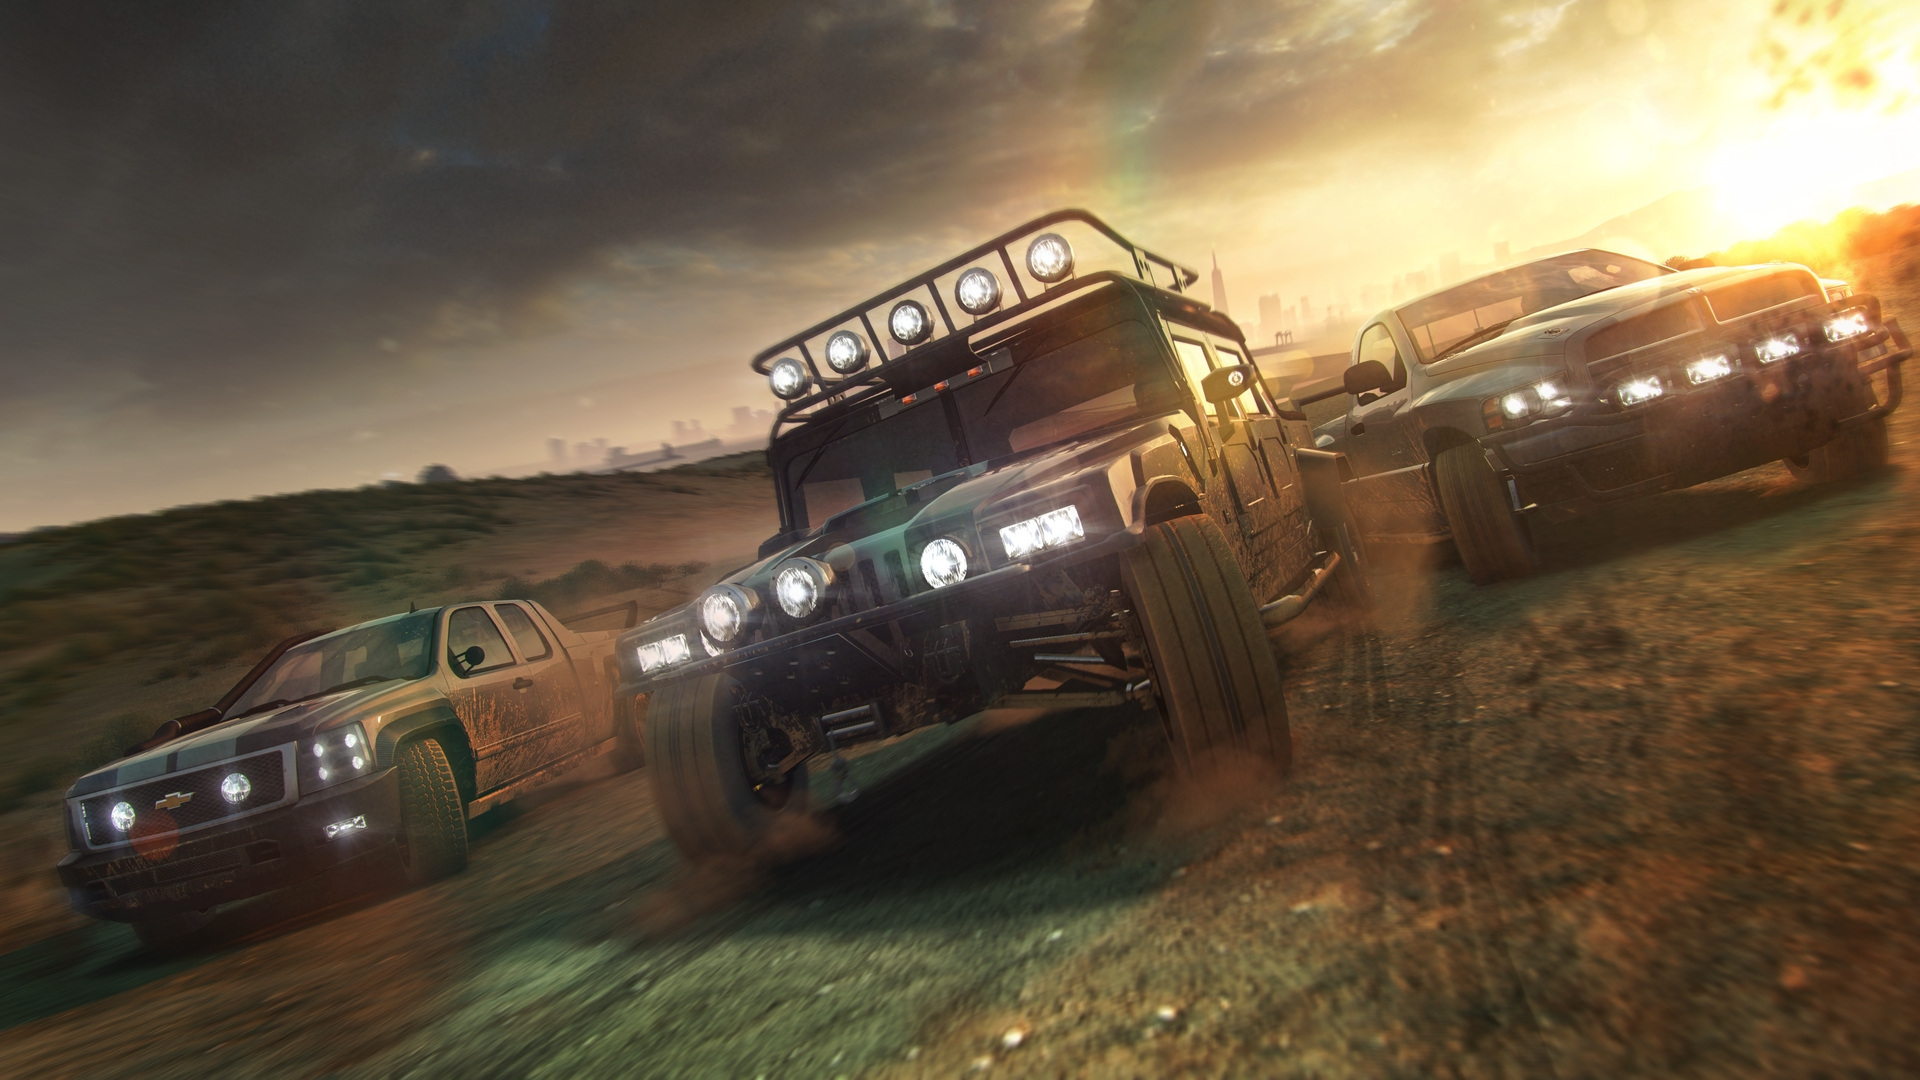 The Crew Minimum Hardware Requirements For PC Confirmed